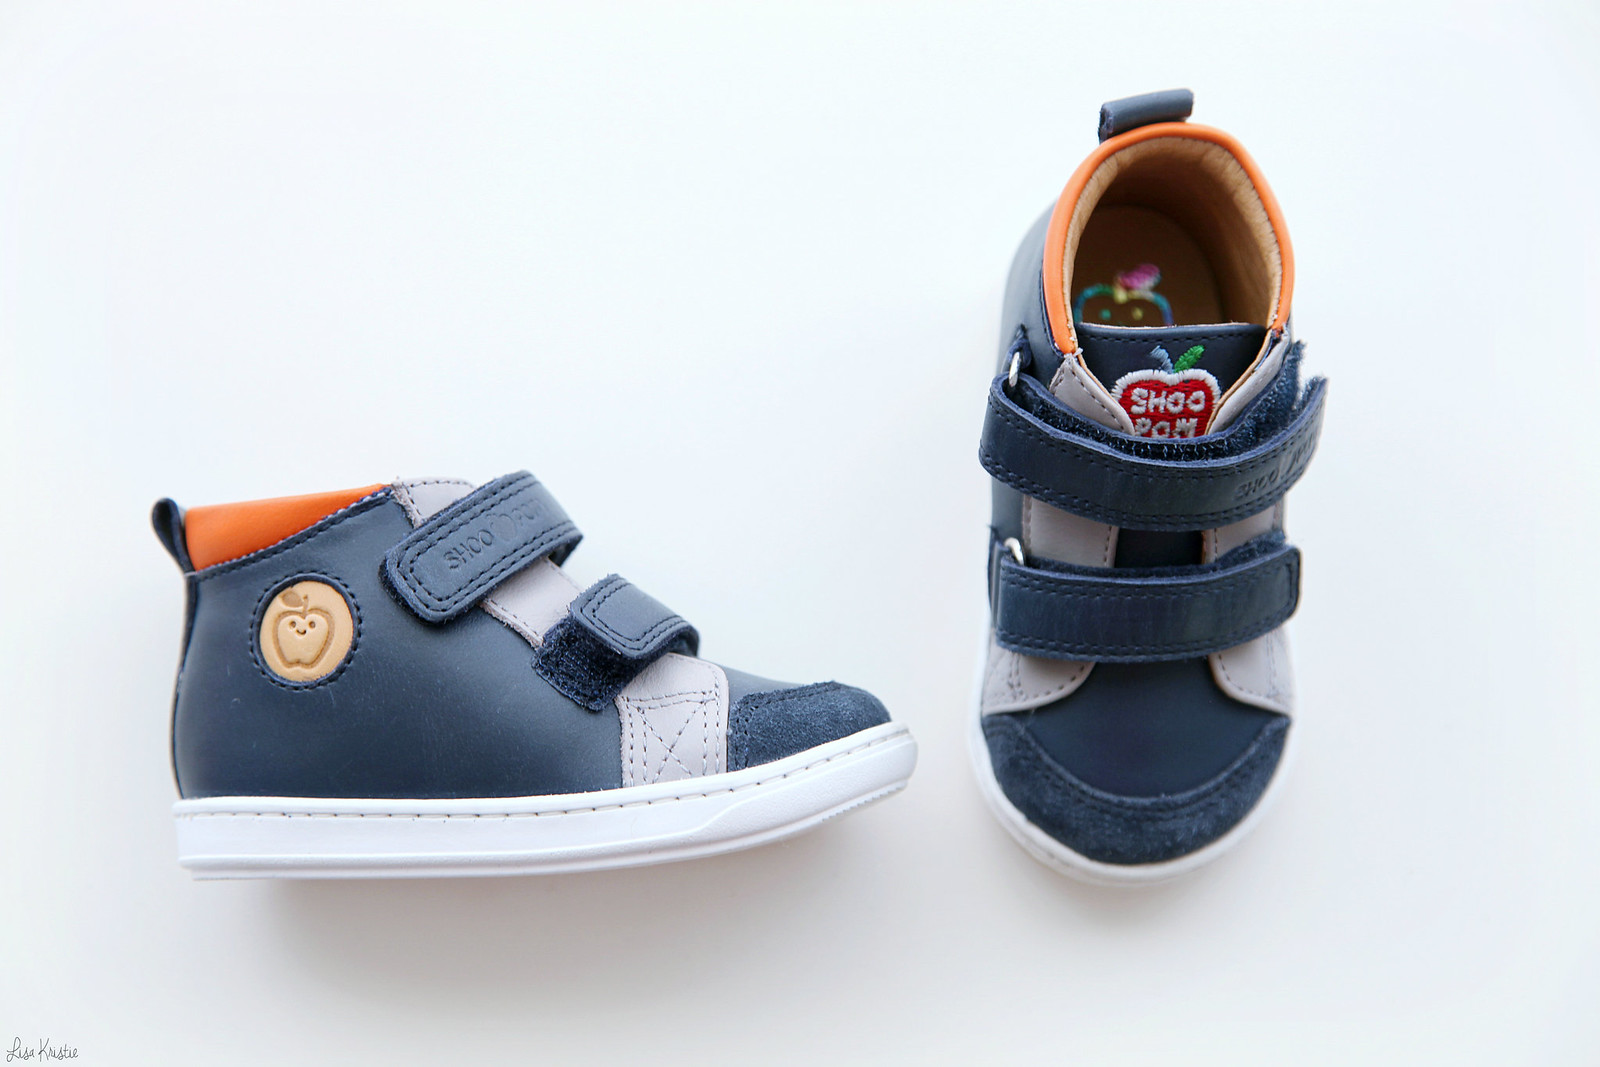 Shoo Pom baby boy first step shoes bouba new scratch ss17 spring summer 2017 french brand hook and loop fasteners blue navy velcro real leather